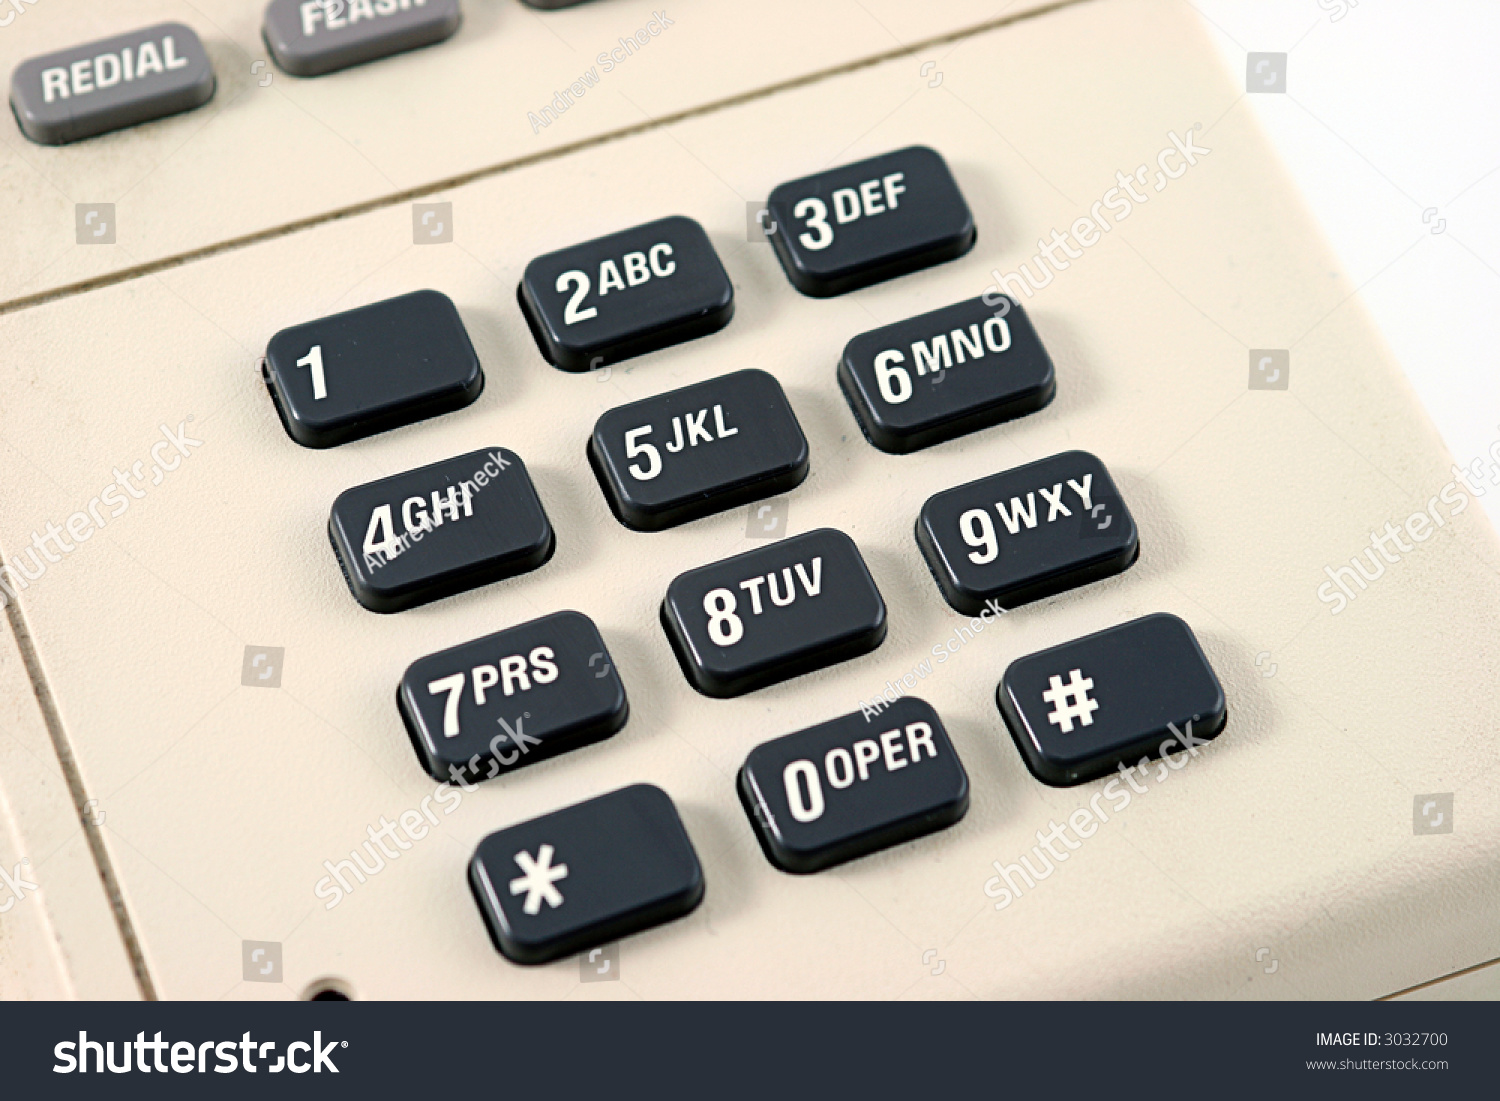 Touch Tone Phone Dial Pad Waiting Stock Photo 3032700 - Shutterstock